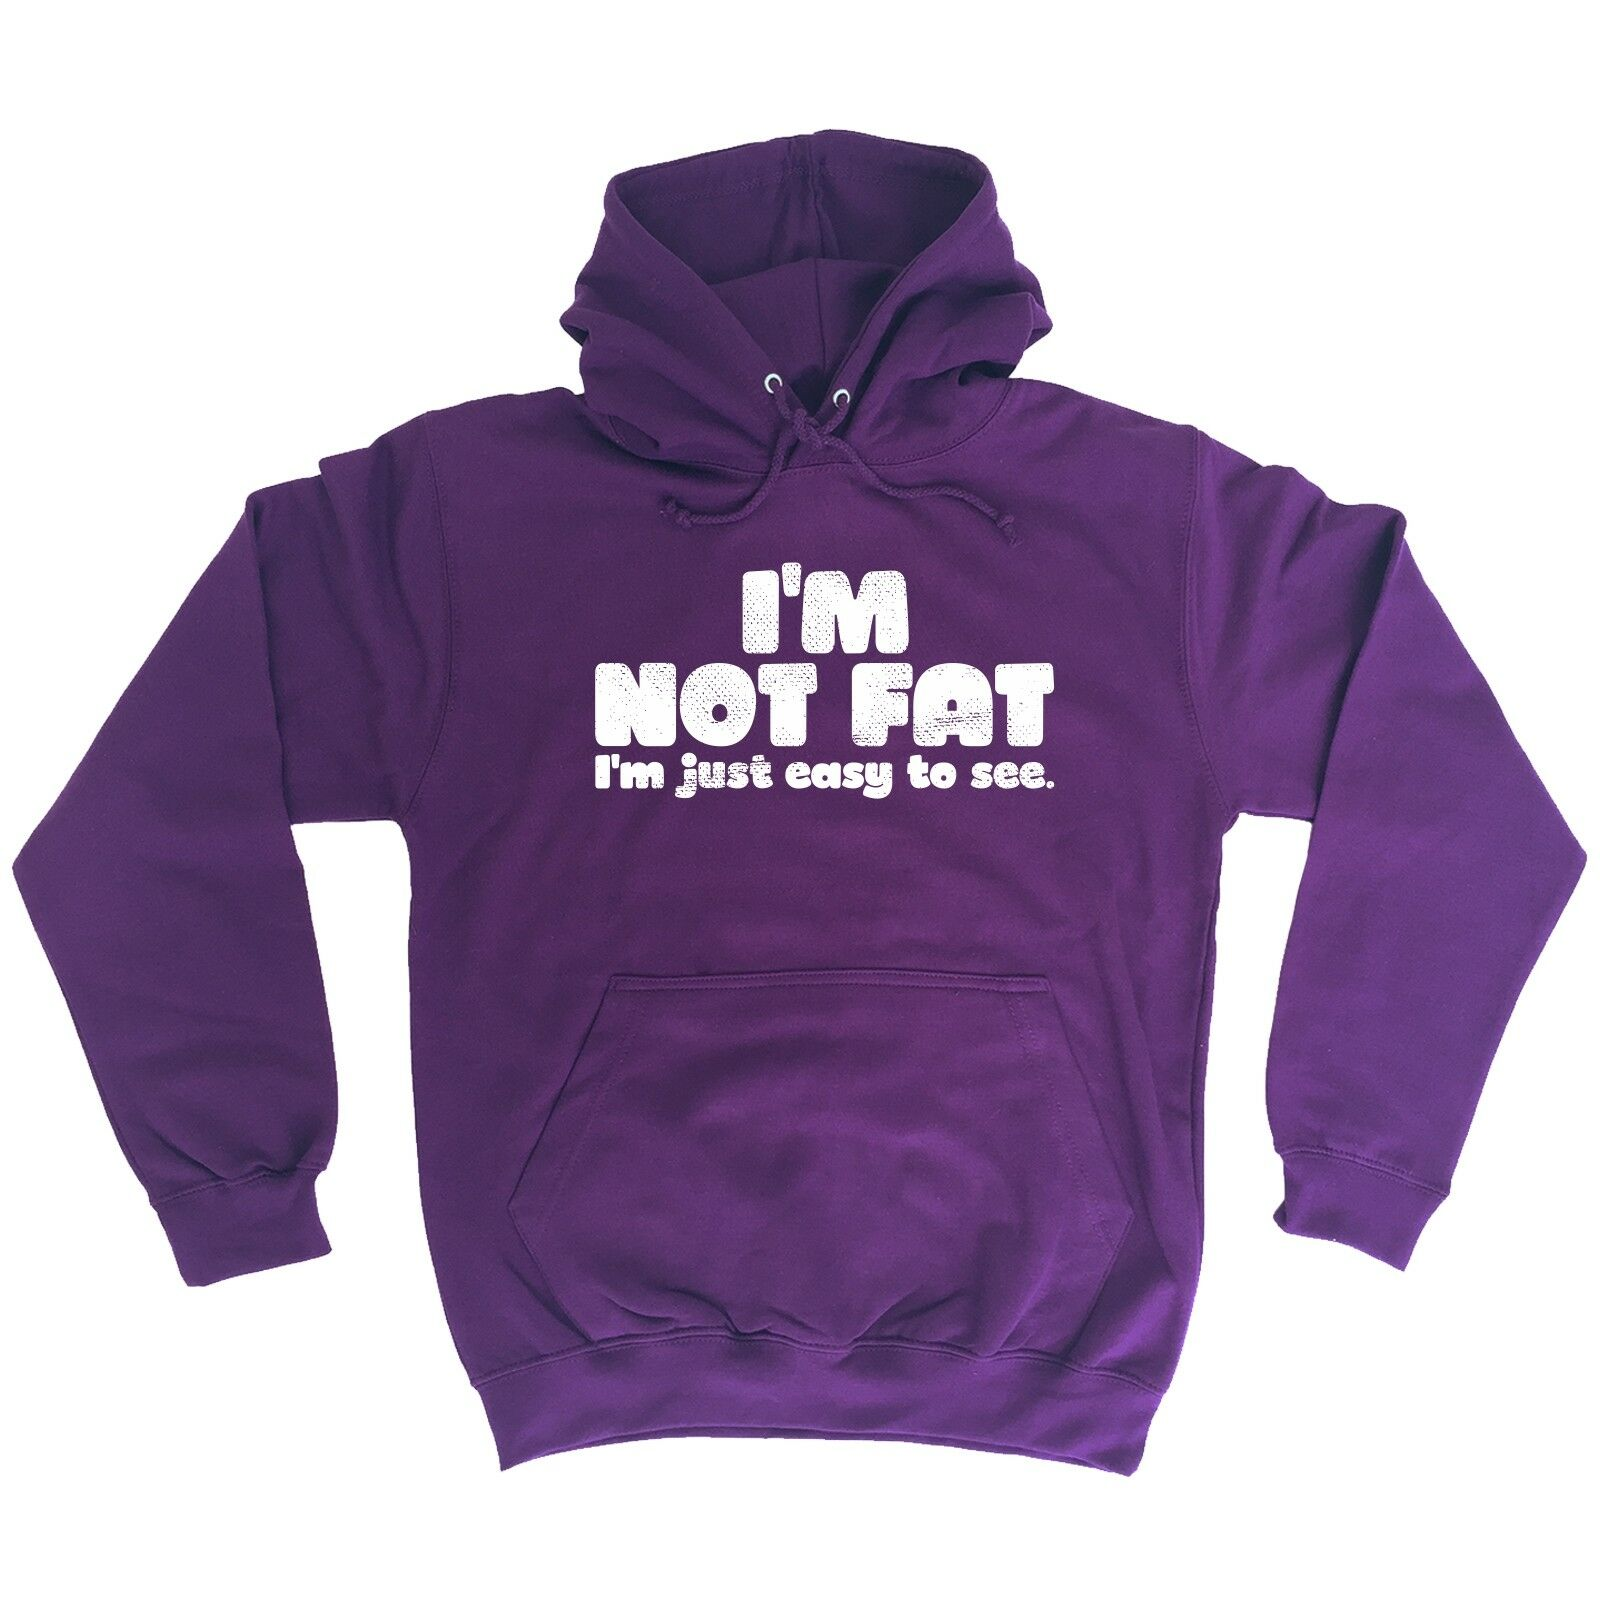 Im Not Fat Im Just Easy To See Funny Plus Sized Clothing Overweight HOODIE